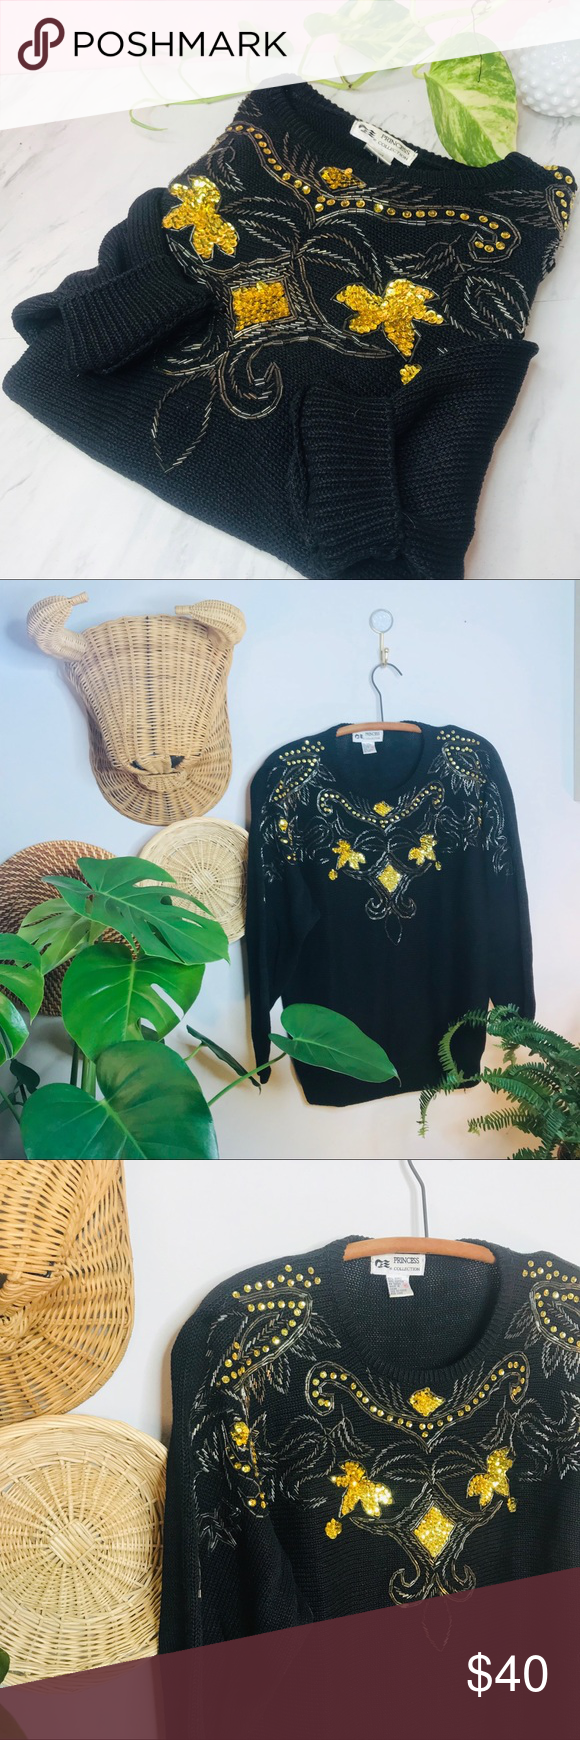 vtg retro 90s beaded funky oversized gold sweater •Vtg Retro 80s Gold Beaded Leaf Sweater  • Tags say Medium but would fit a small as oversized sw...